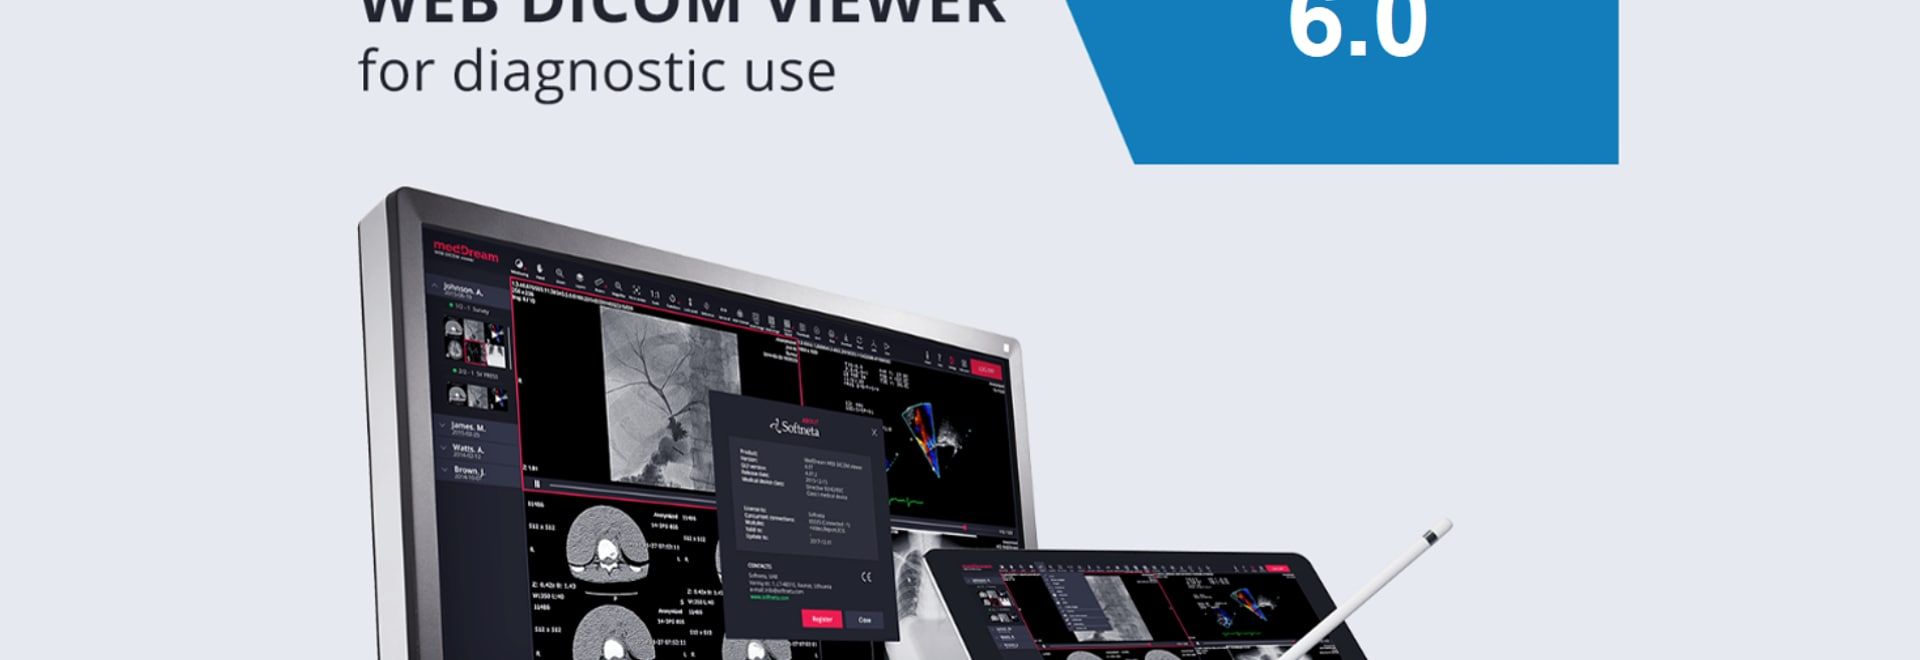 MedDream DICOM Viewer new release